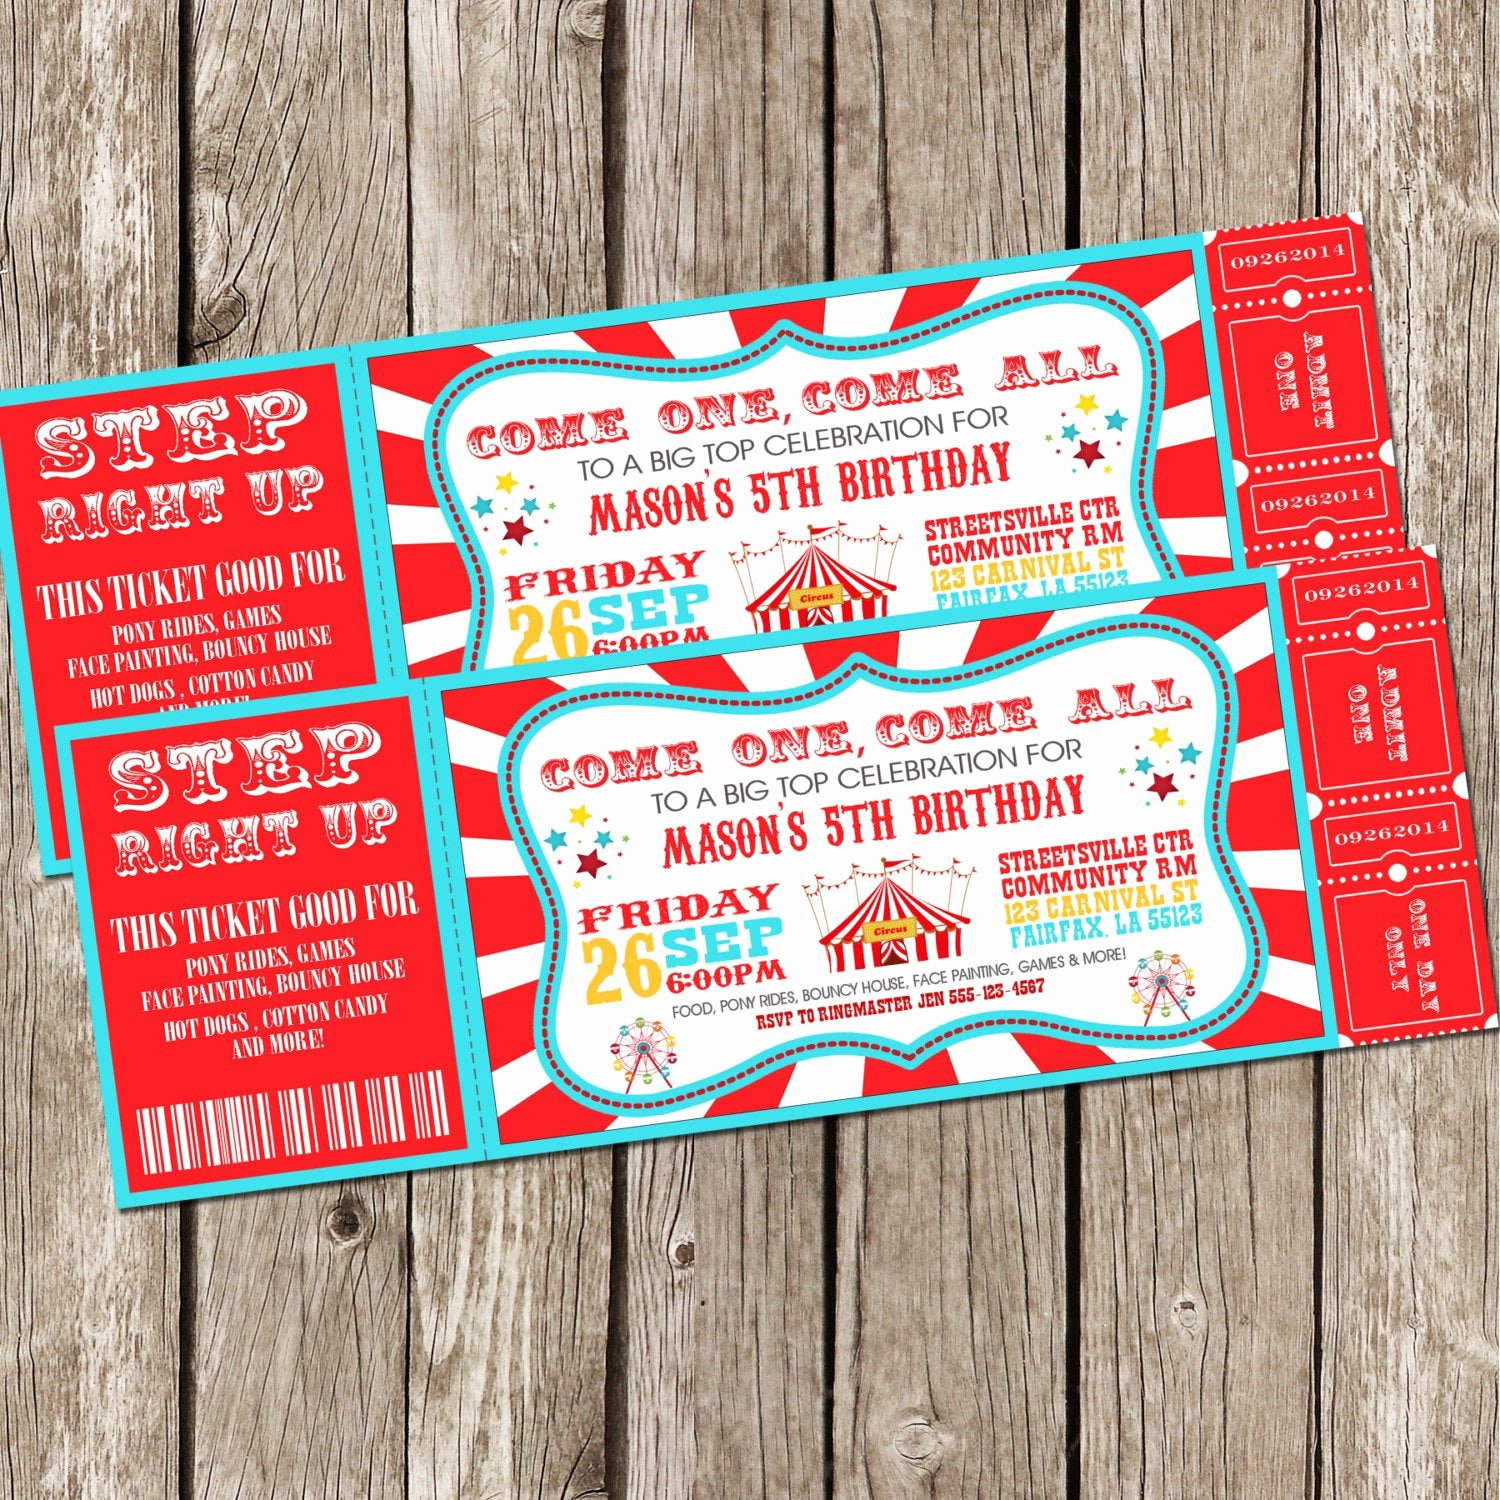 Carnival Ticket Invitation Awesome Vintage Circus Carnival Invitation Ticket Invitation